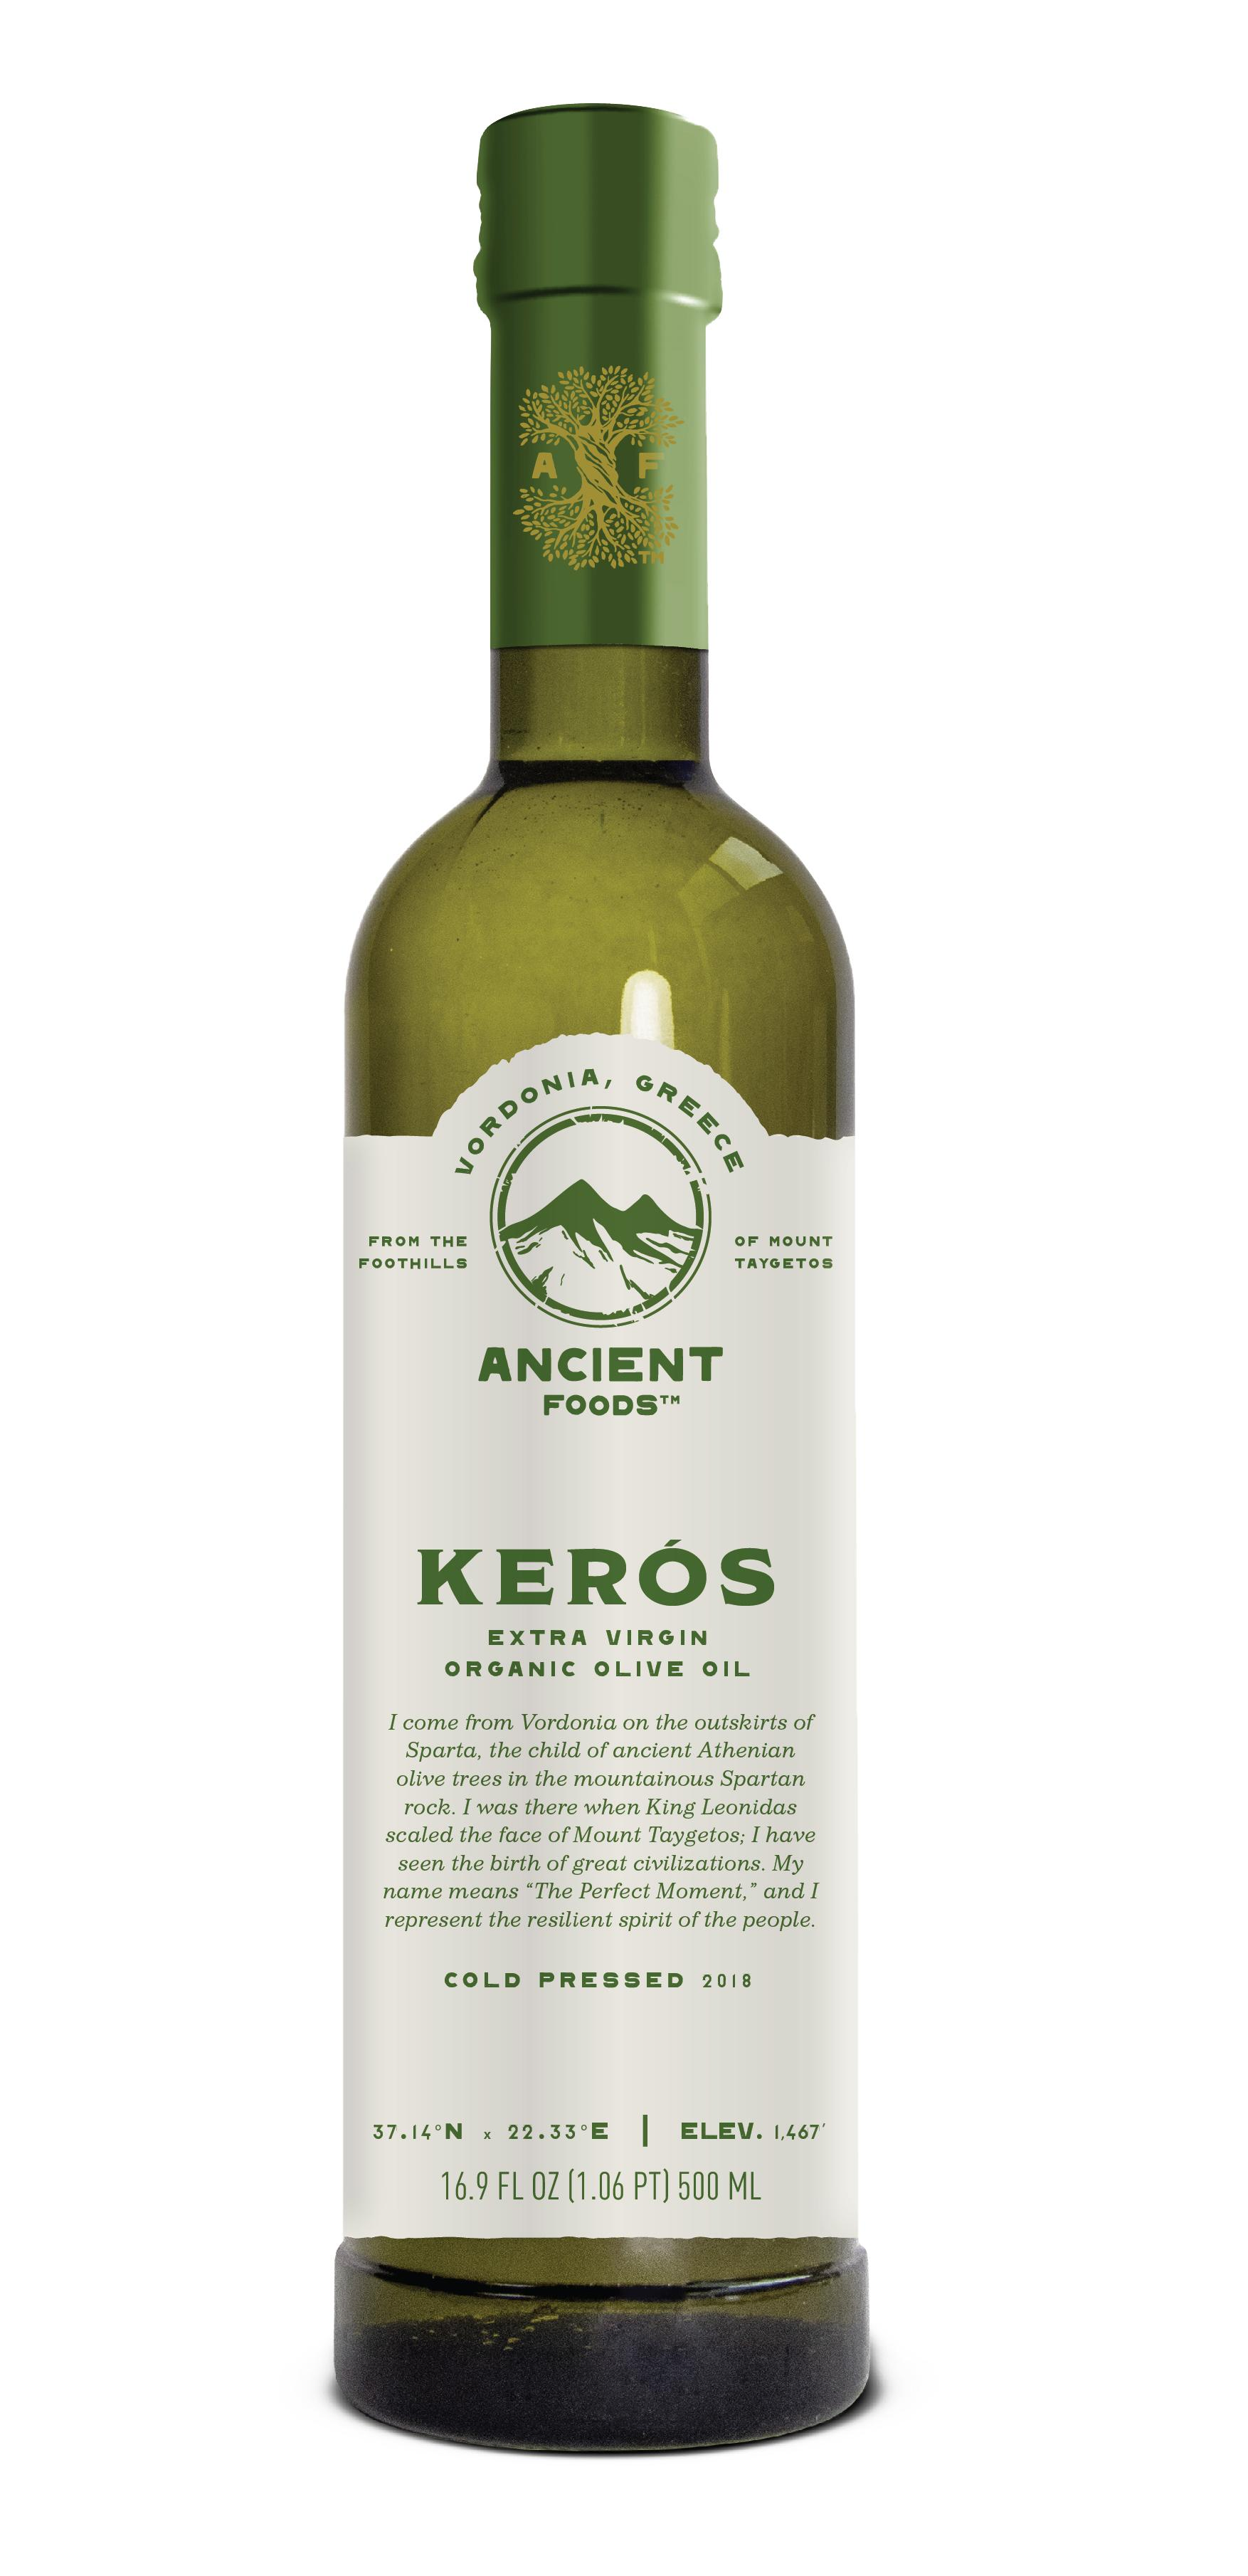 Keros Olive Oil from Ancient Foods // Price: $27 // Buy at Officina Market or online // https://ancientfoods.com // (Image: Ancient Foods)